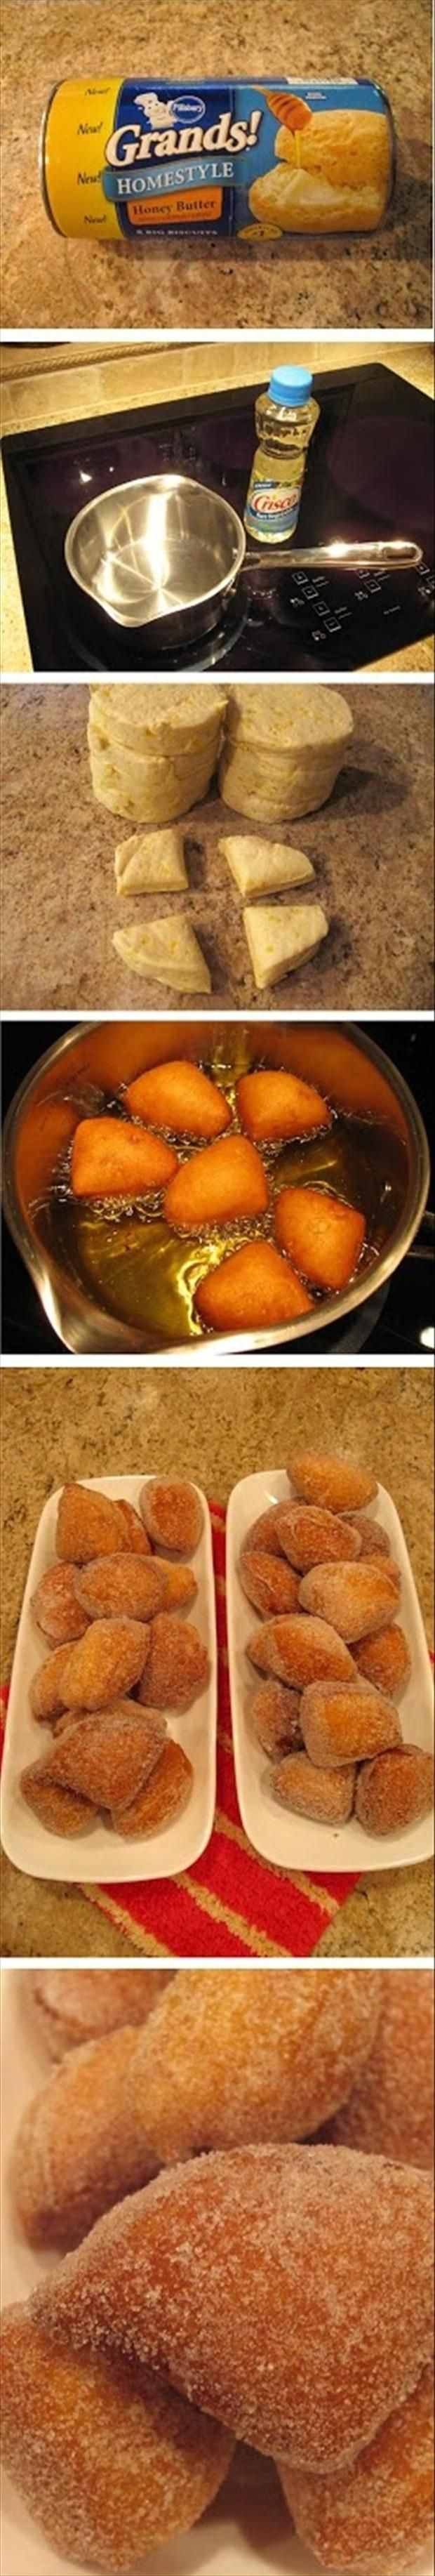 how-to-make-donuts.jpg (620×3669)